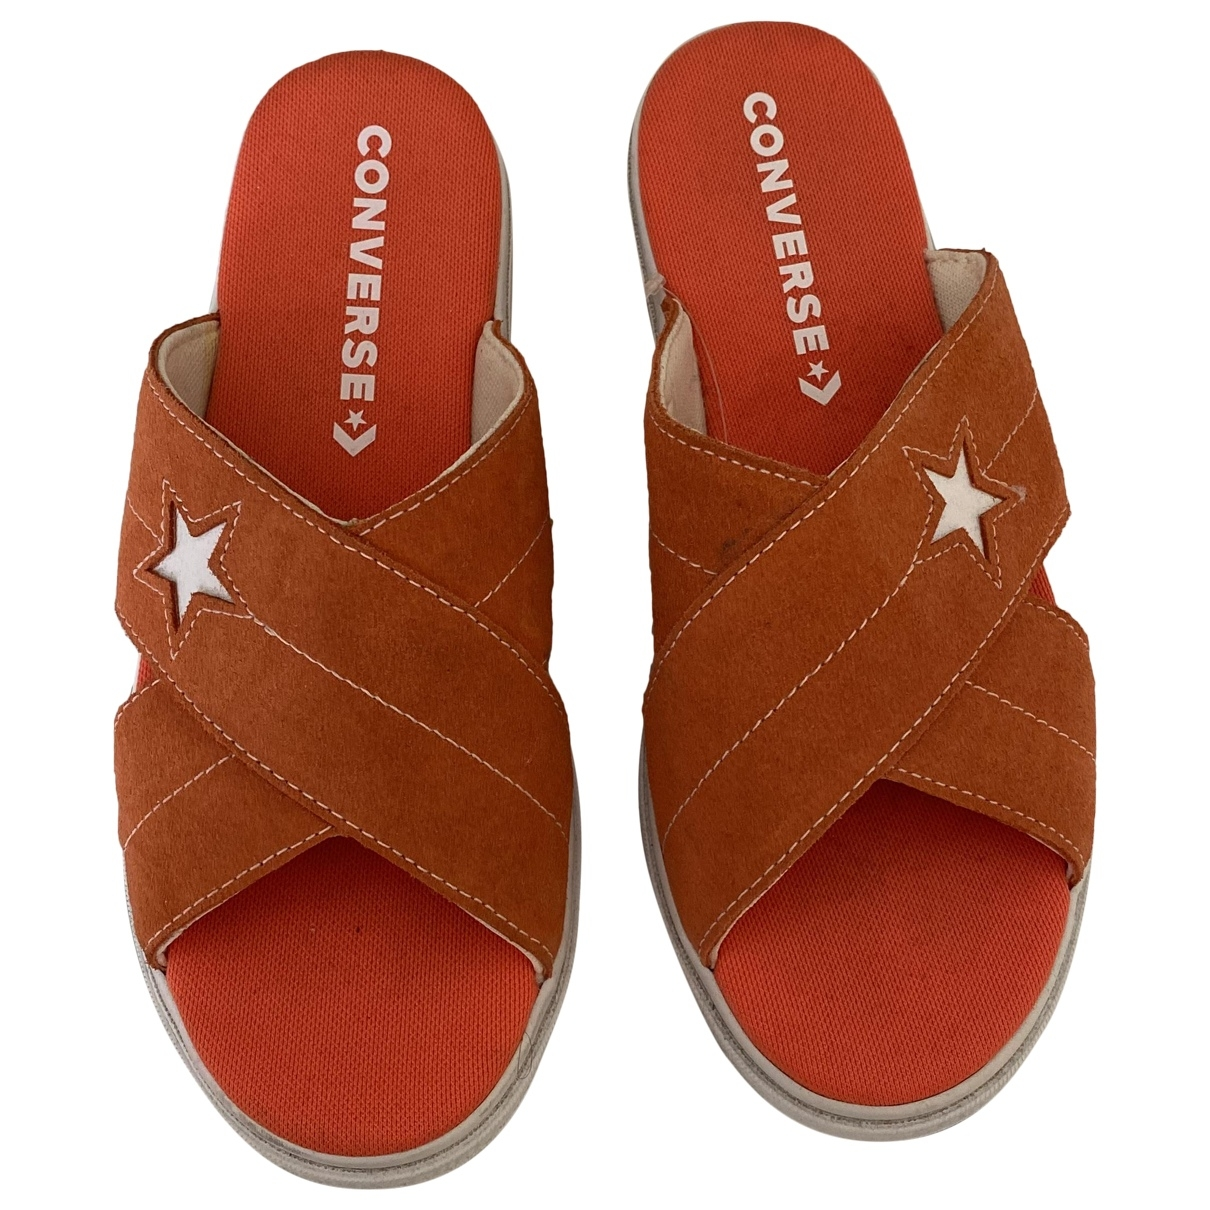 Converse \N Orange Leather Mules & Clogs for Women 6 UK